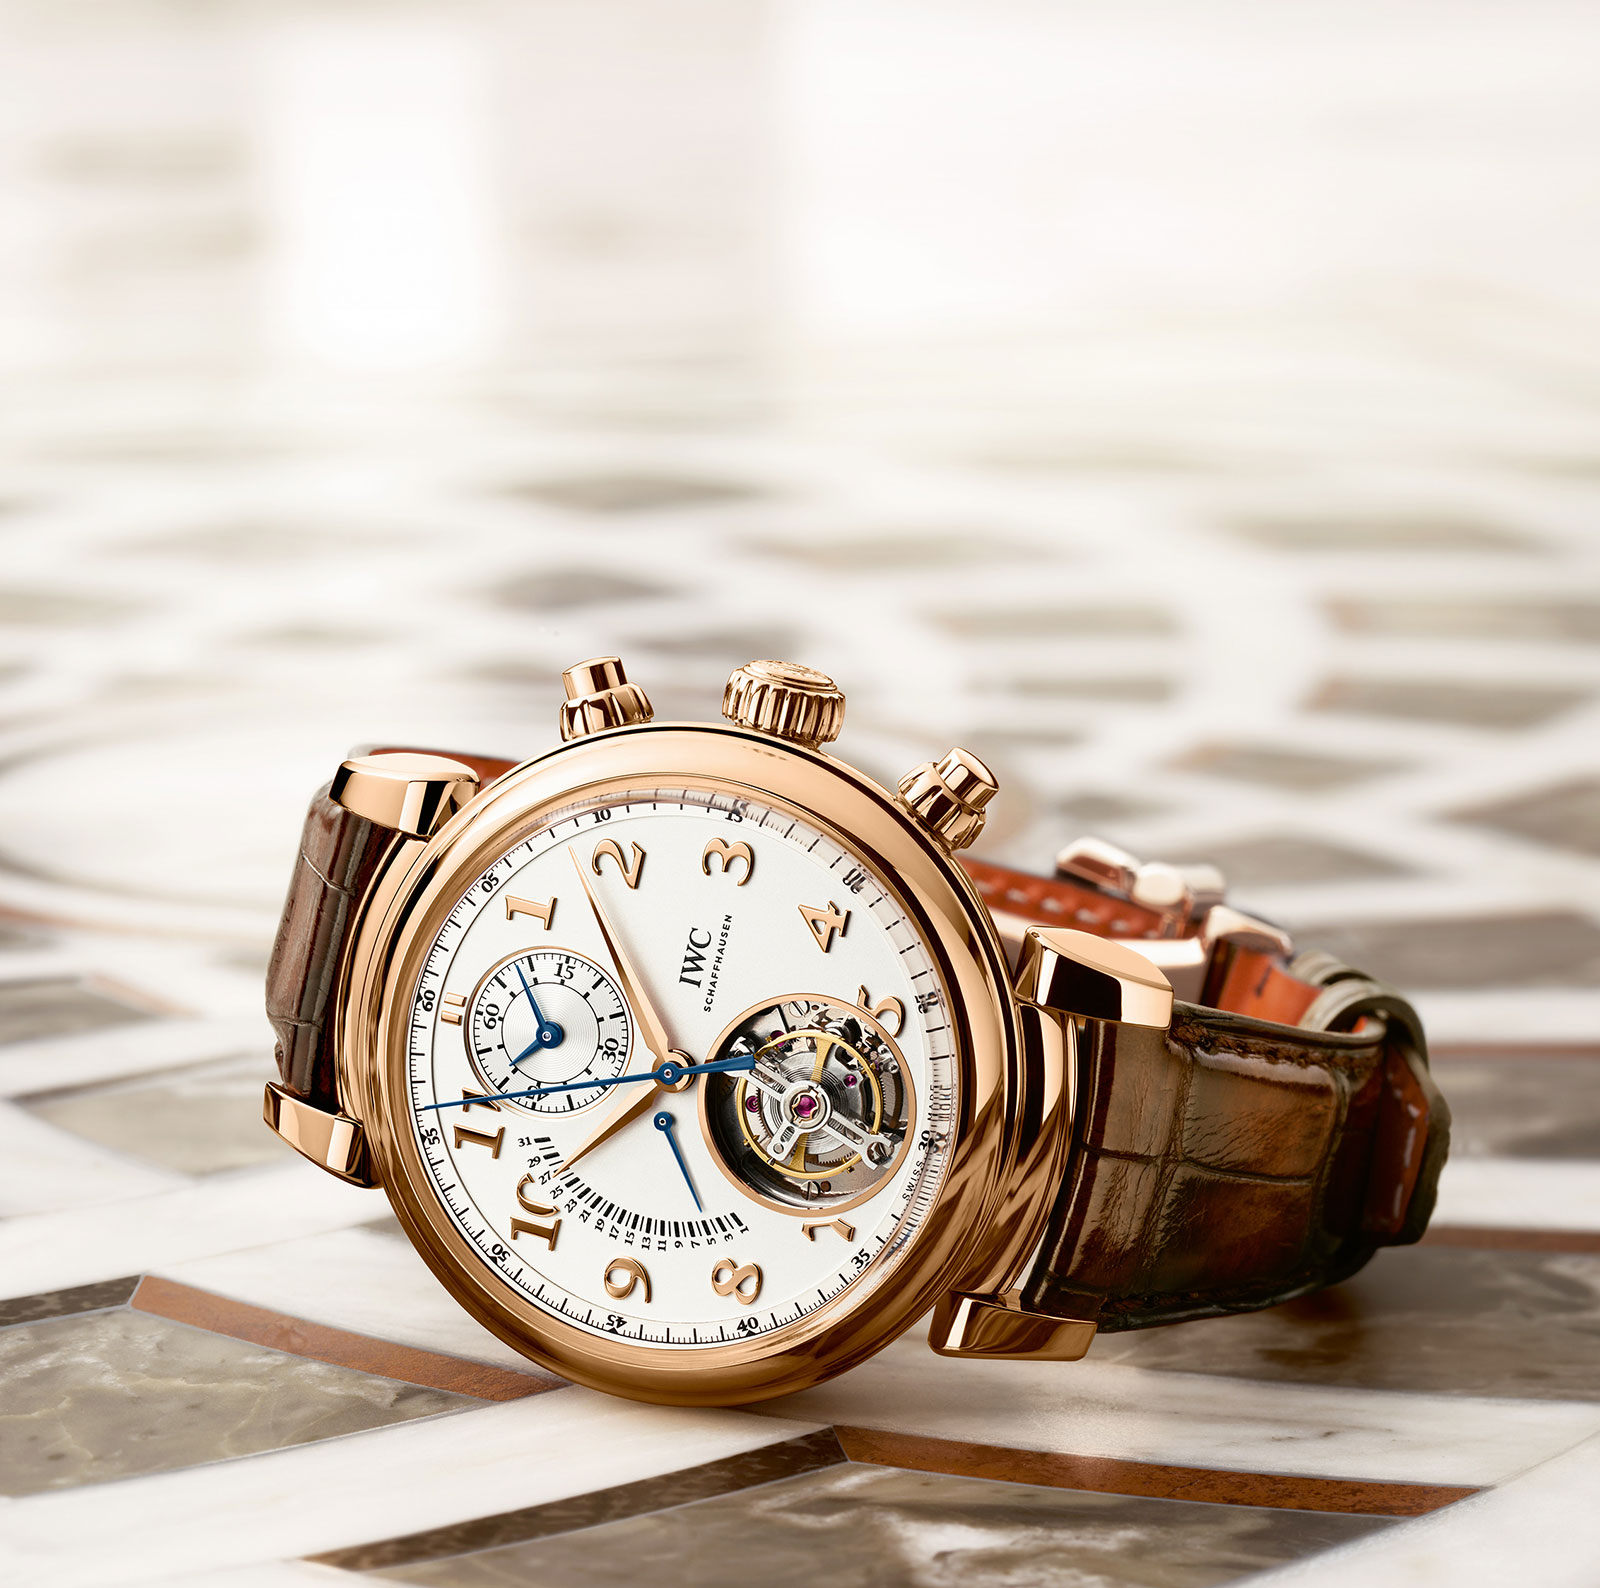 IWC Da Vinci Tourbillon Retrograde Chronograph 3